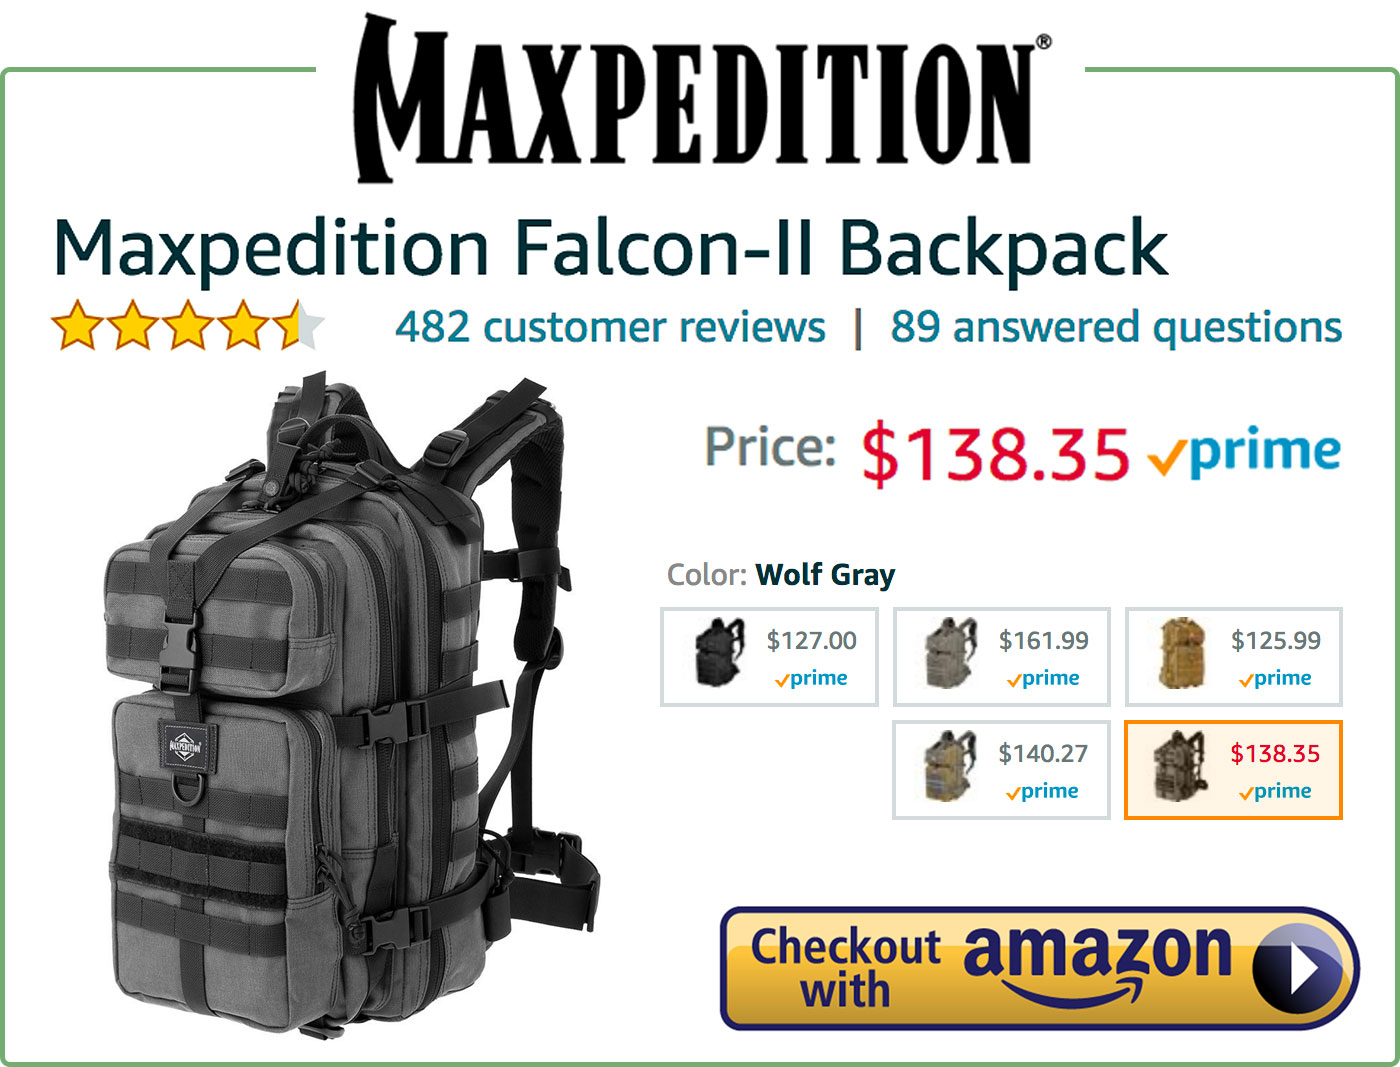 Bug-Out-Bag-Builder-Maxpedition-Falcon-II-Review-AMZ.jpg